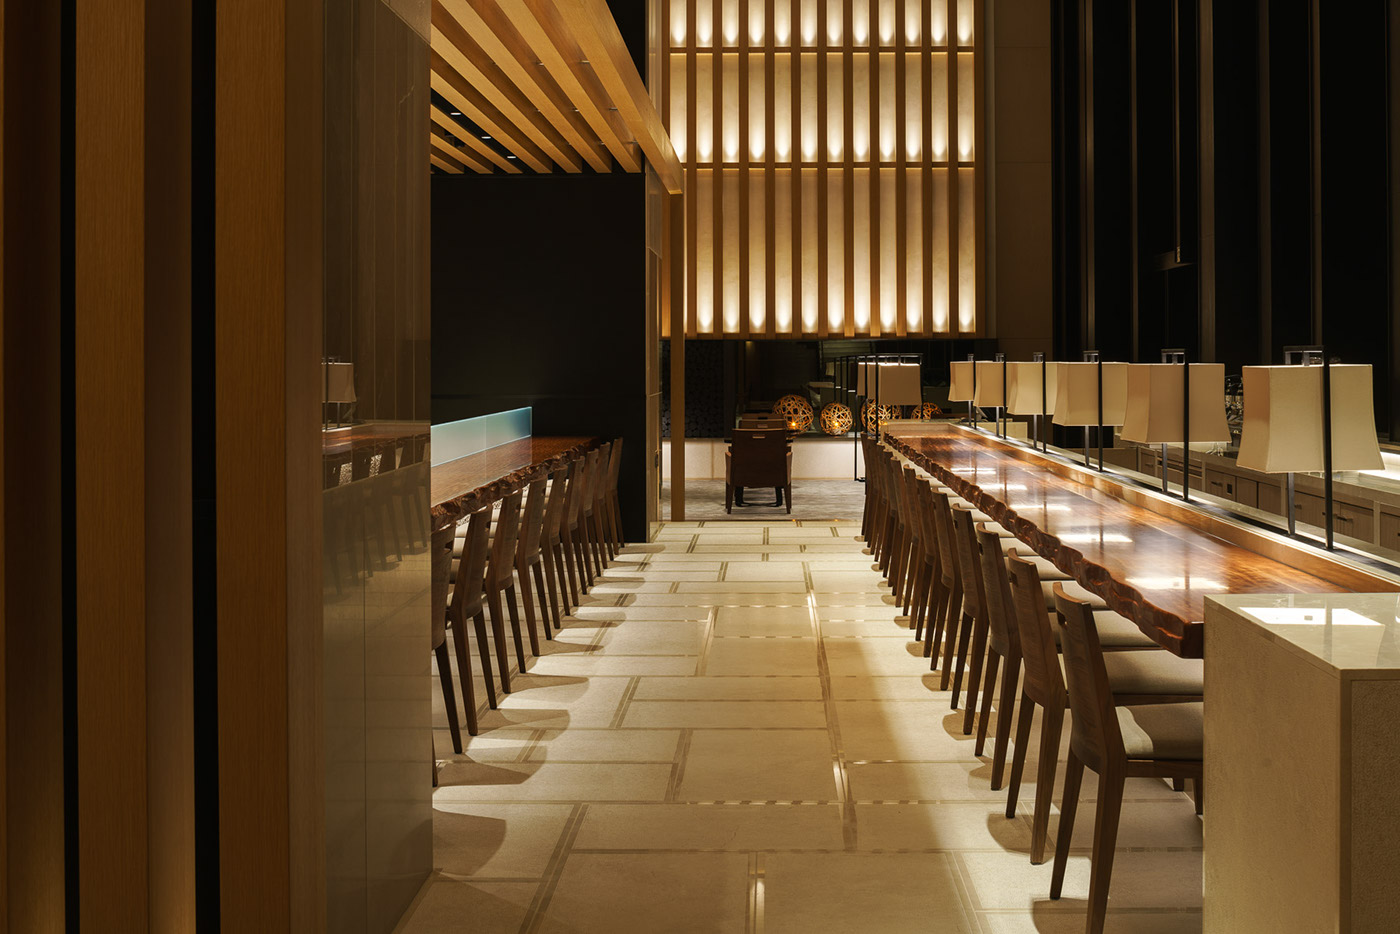 Photography brasserie in four seasons hotel kyoto for Design hotel kyoto